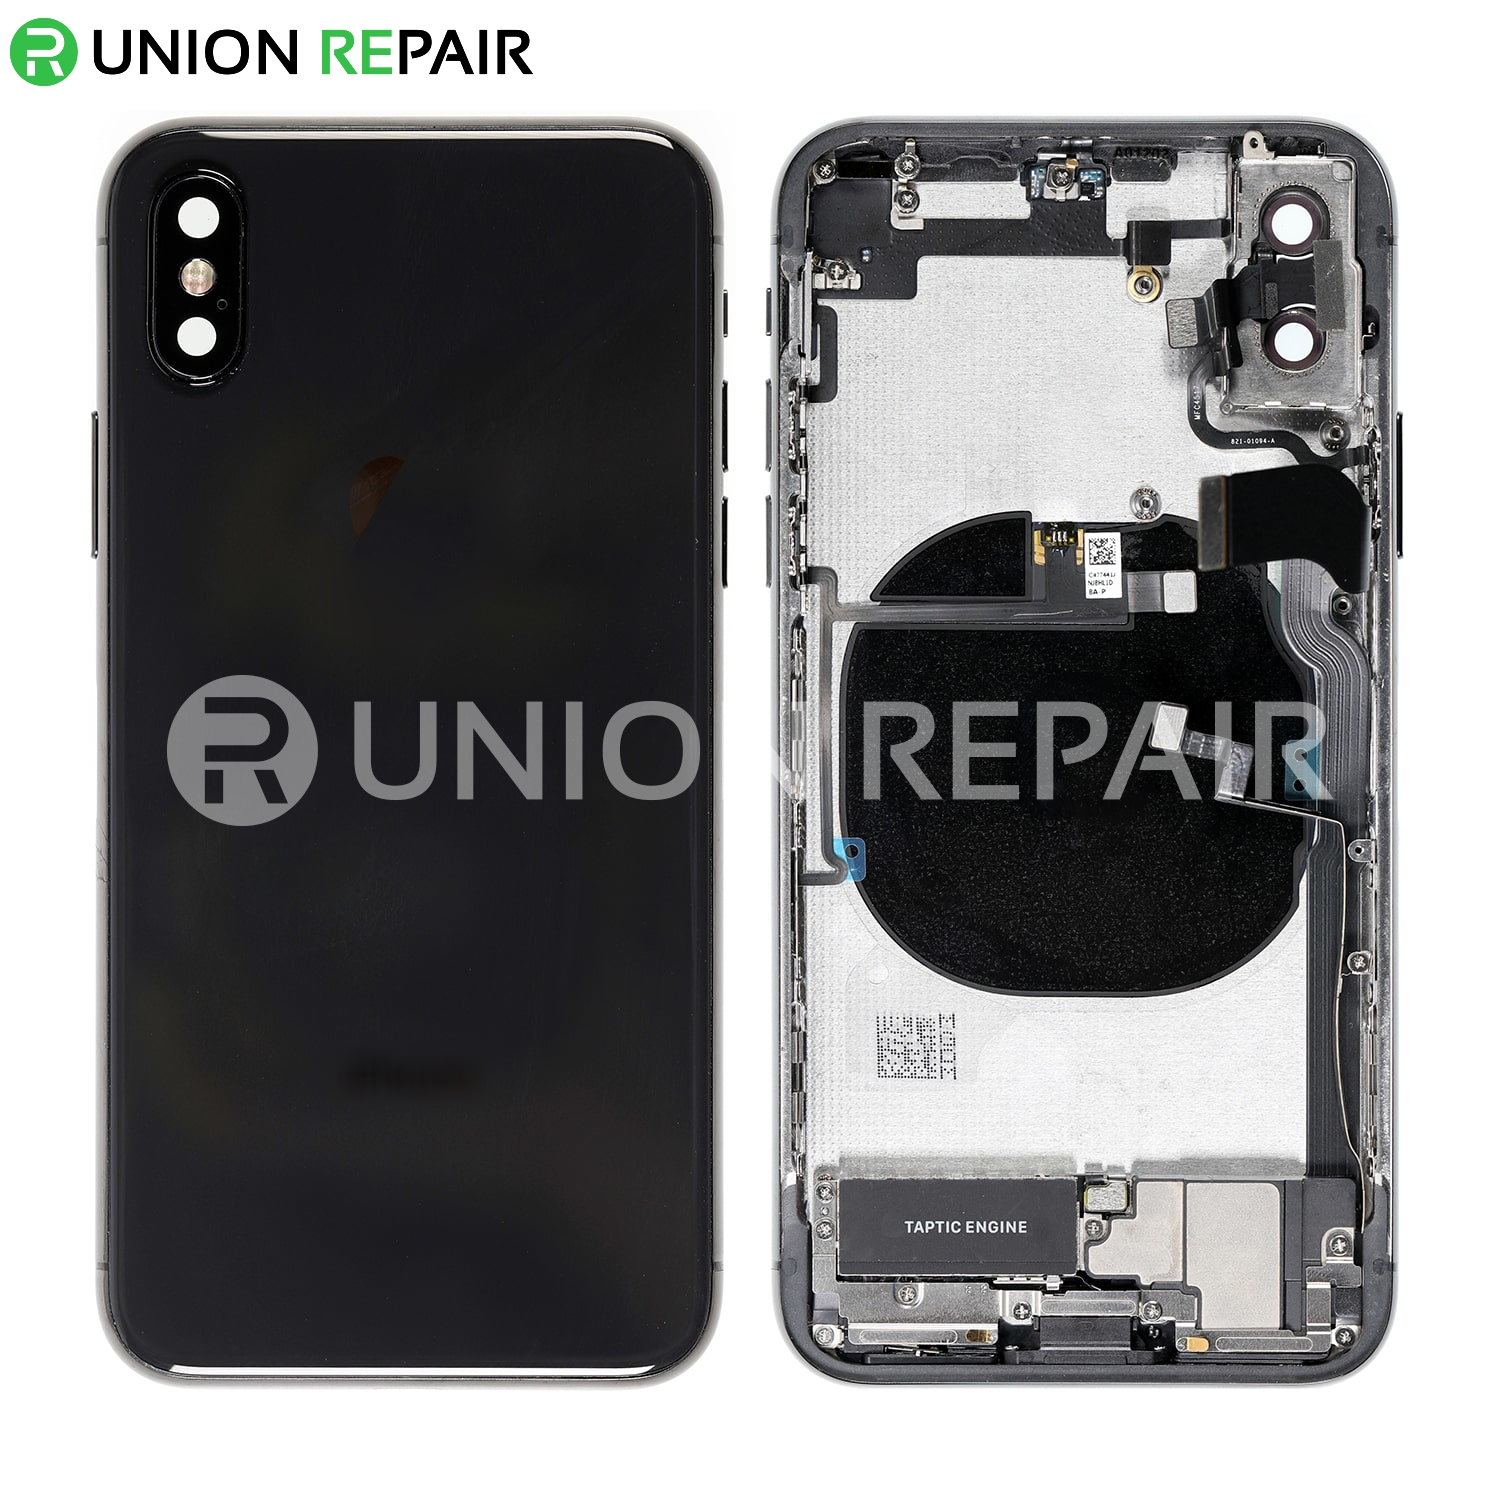 promo code 48a88 a3a69 Replacement for iPhone X Back Cover Full Assembly - Space Gray